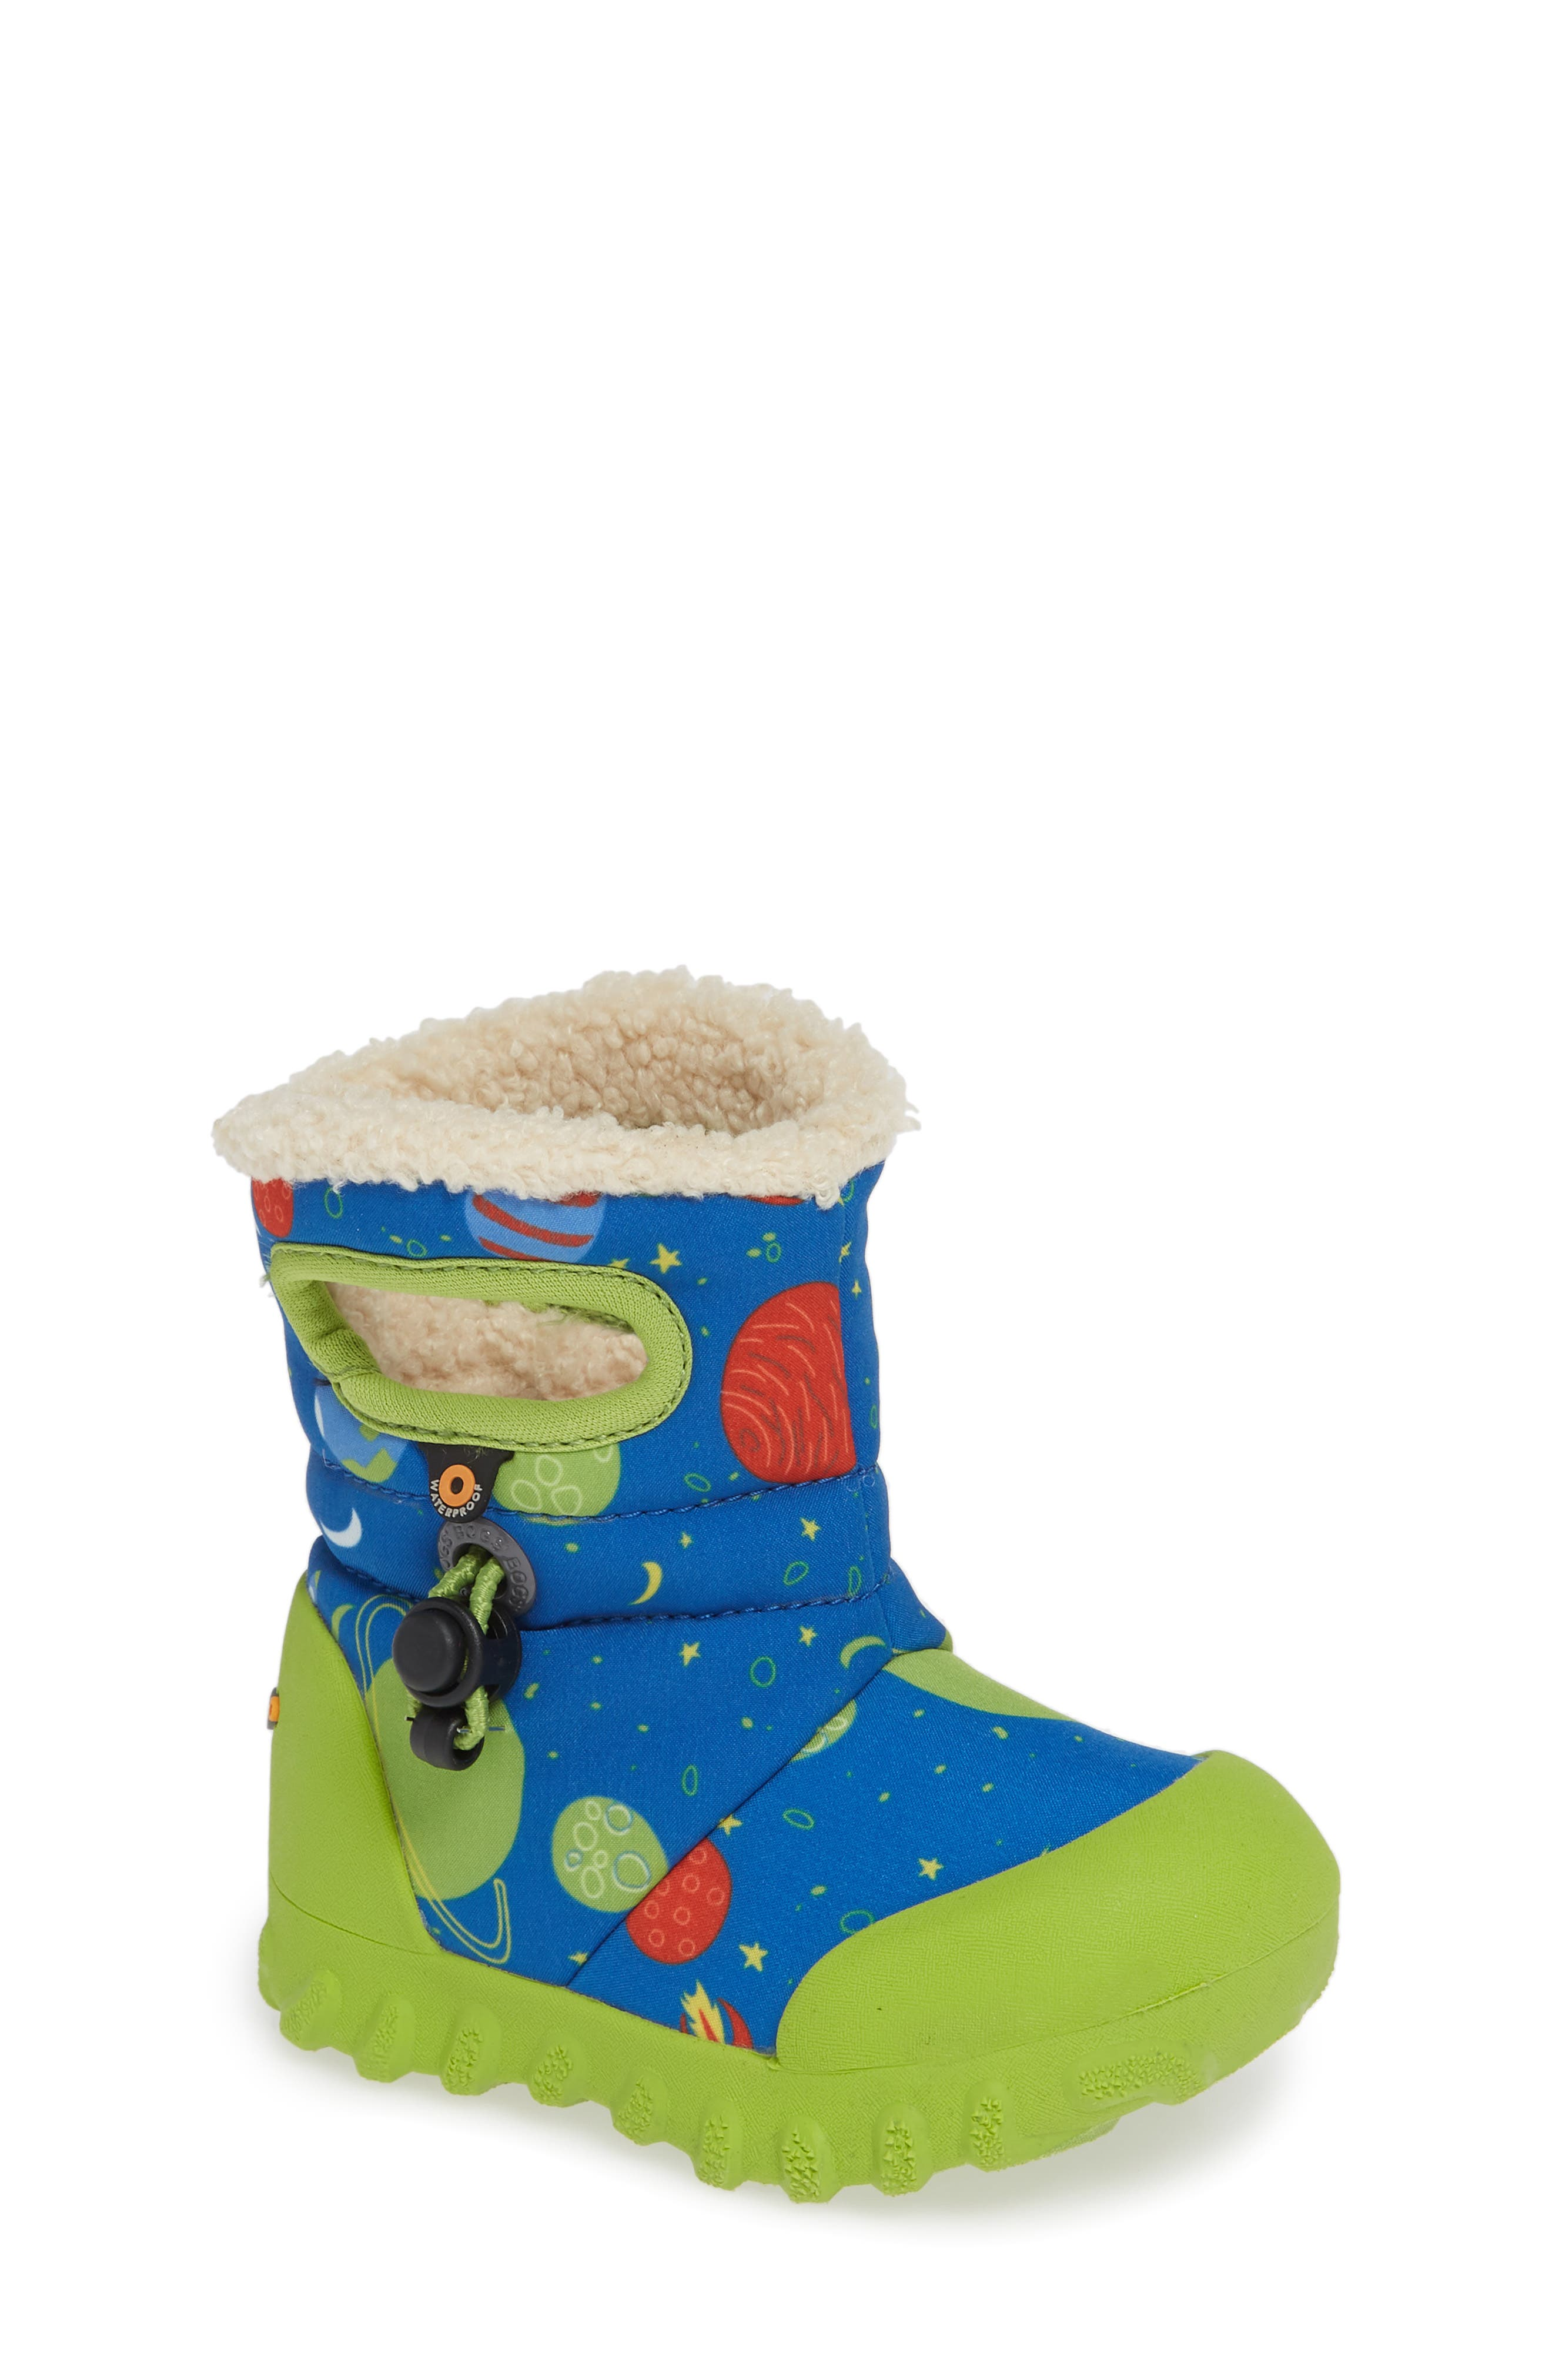 BOGS B-MOC Space Waterproof Insulated Faux Fur Boot, Main, color, BLUE MULTI